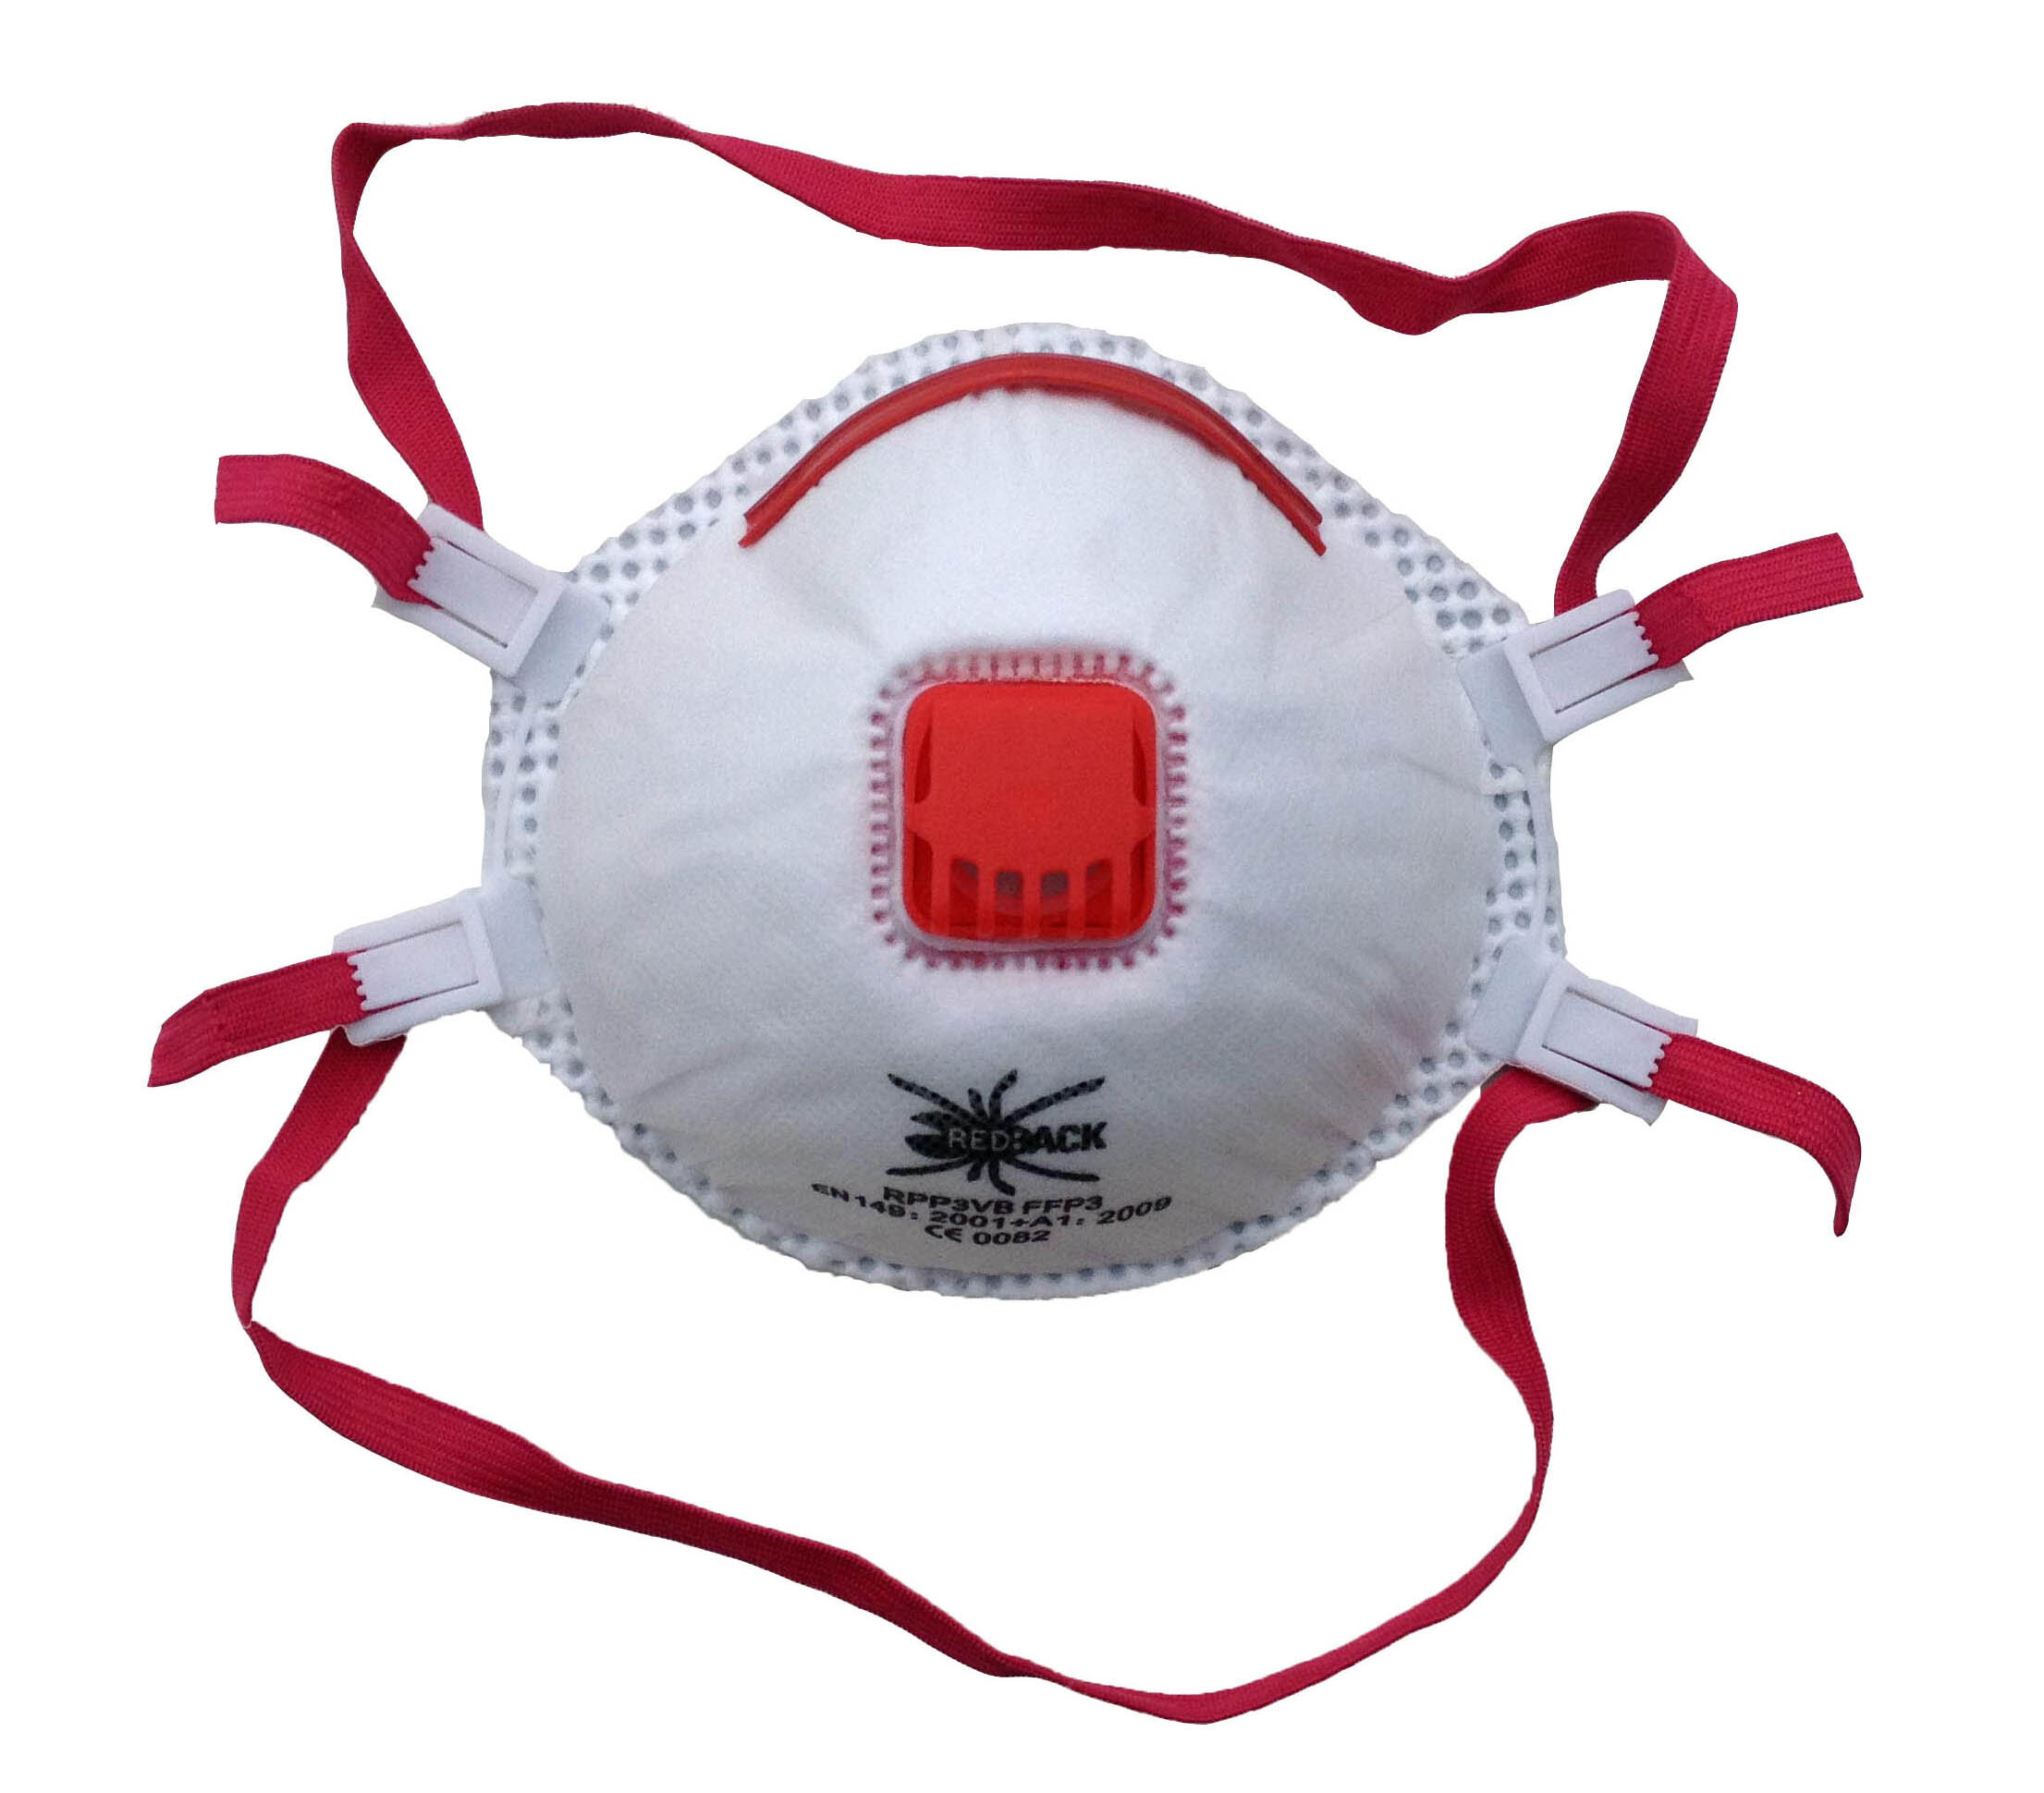 REDBACK Dust Mask with Valve FFP3 (Box of 5)